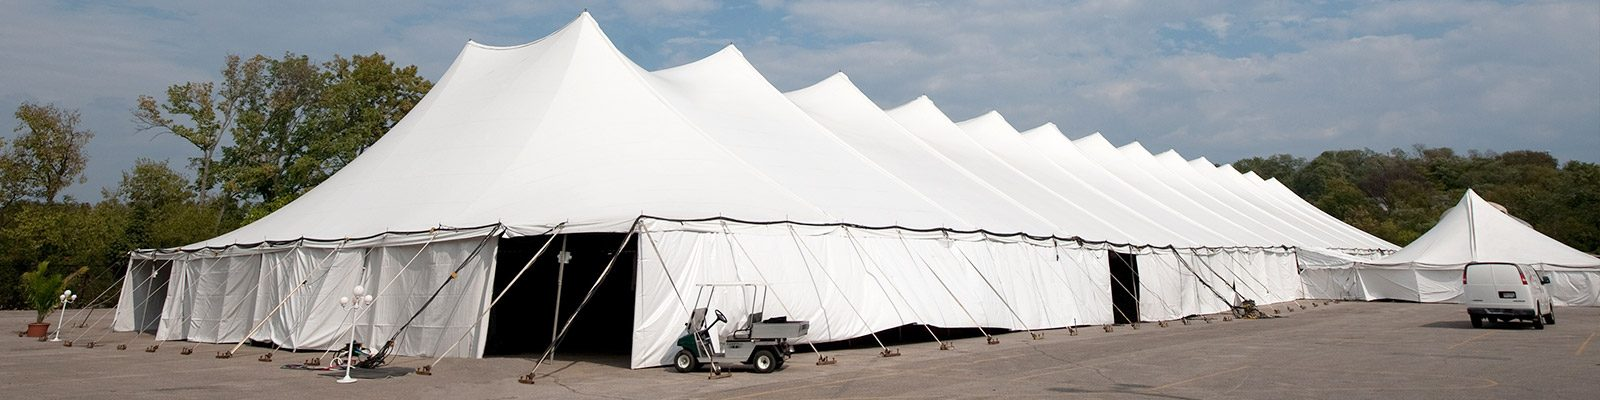 & Tent Rental Guide - Choose the Right Tent | Arena Americas